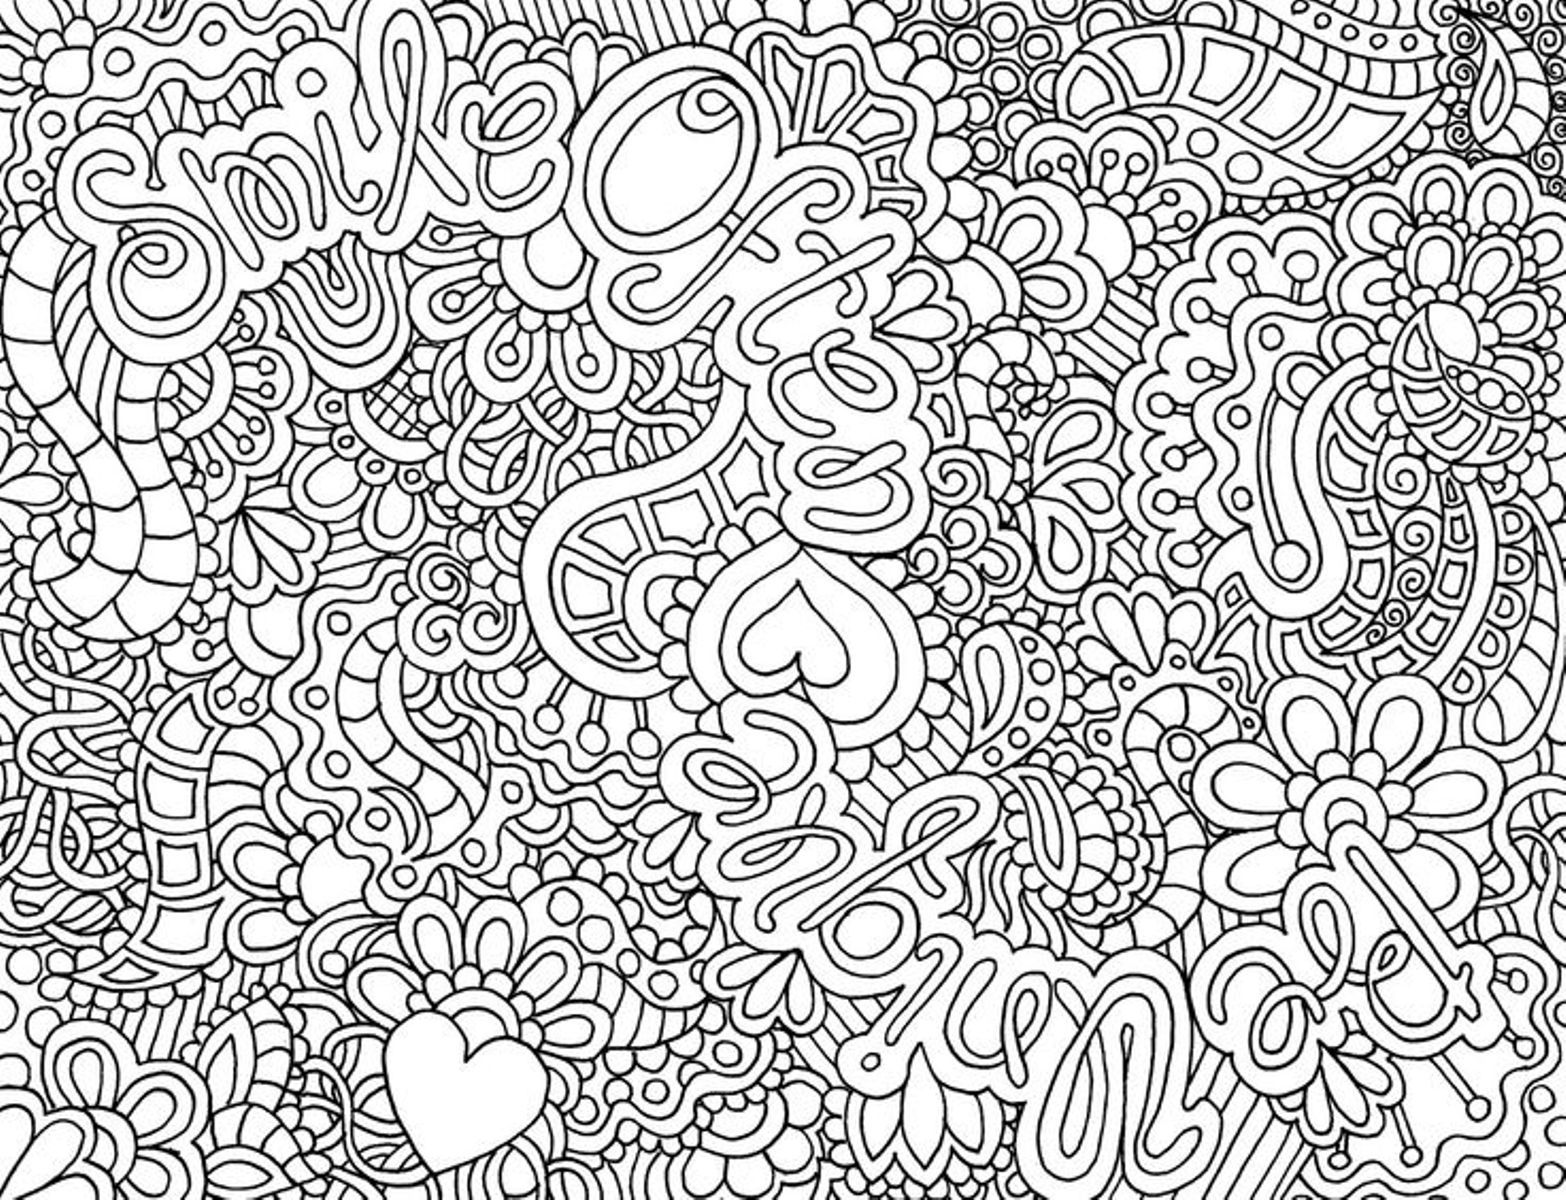 photograph relating to Coloring Pages Printable for Teenagers called Teenage Coloring Internet pages Totally free Printable - Coloring Property